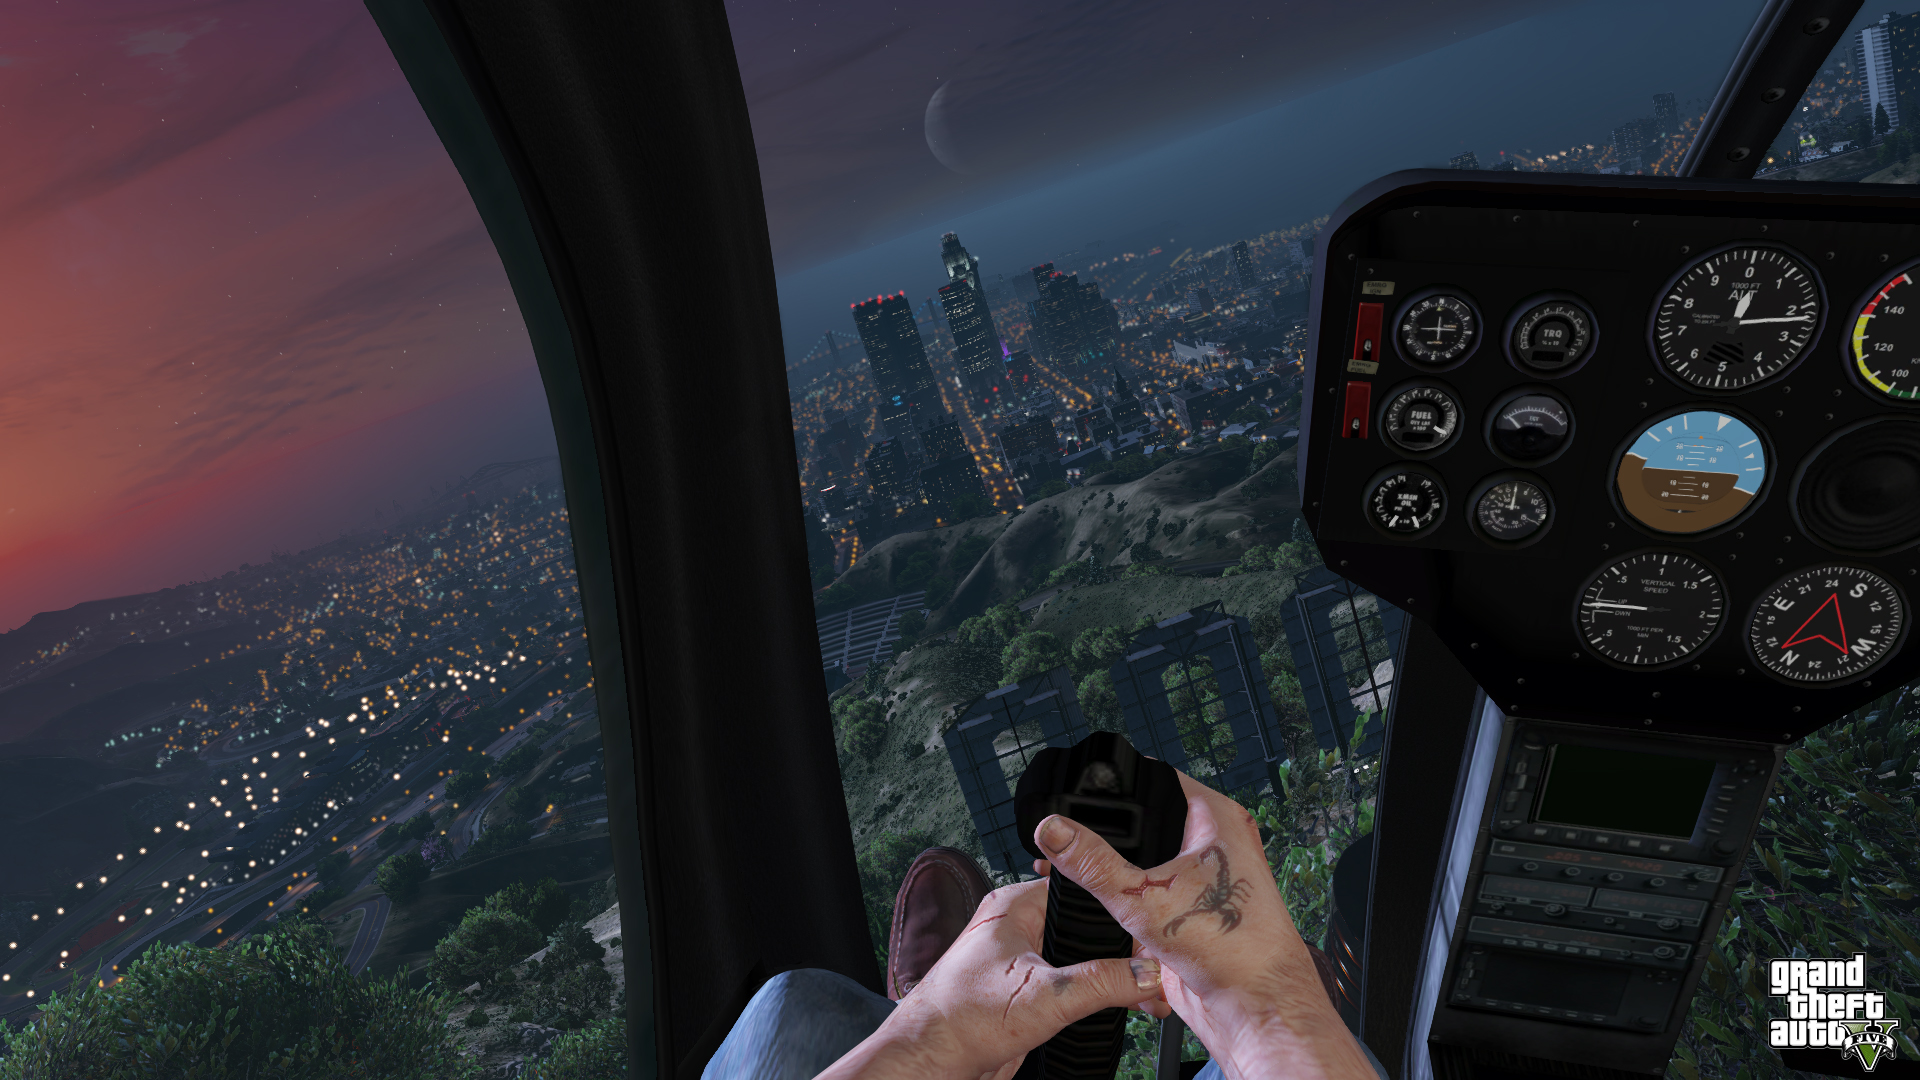 grand theft auto 5 helicopter cheat with Gta V 5 Tudo O Que Precisao De Saber Ps4xbox One E Pc on Watch additionally Watch as well 3 likewise Rockstar Game Tips Customizable Controls In Vice City 10th Anniv besides Gta 5 Police Need Tweaking.